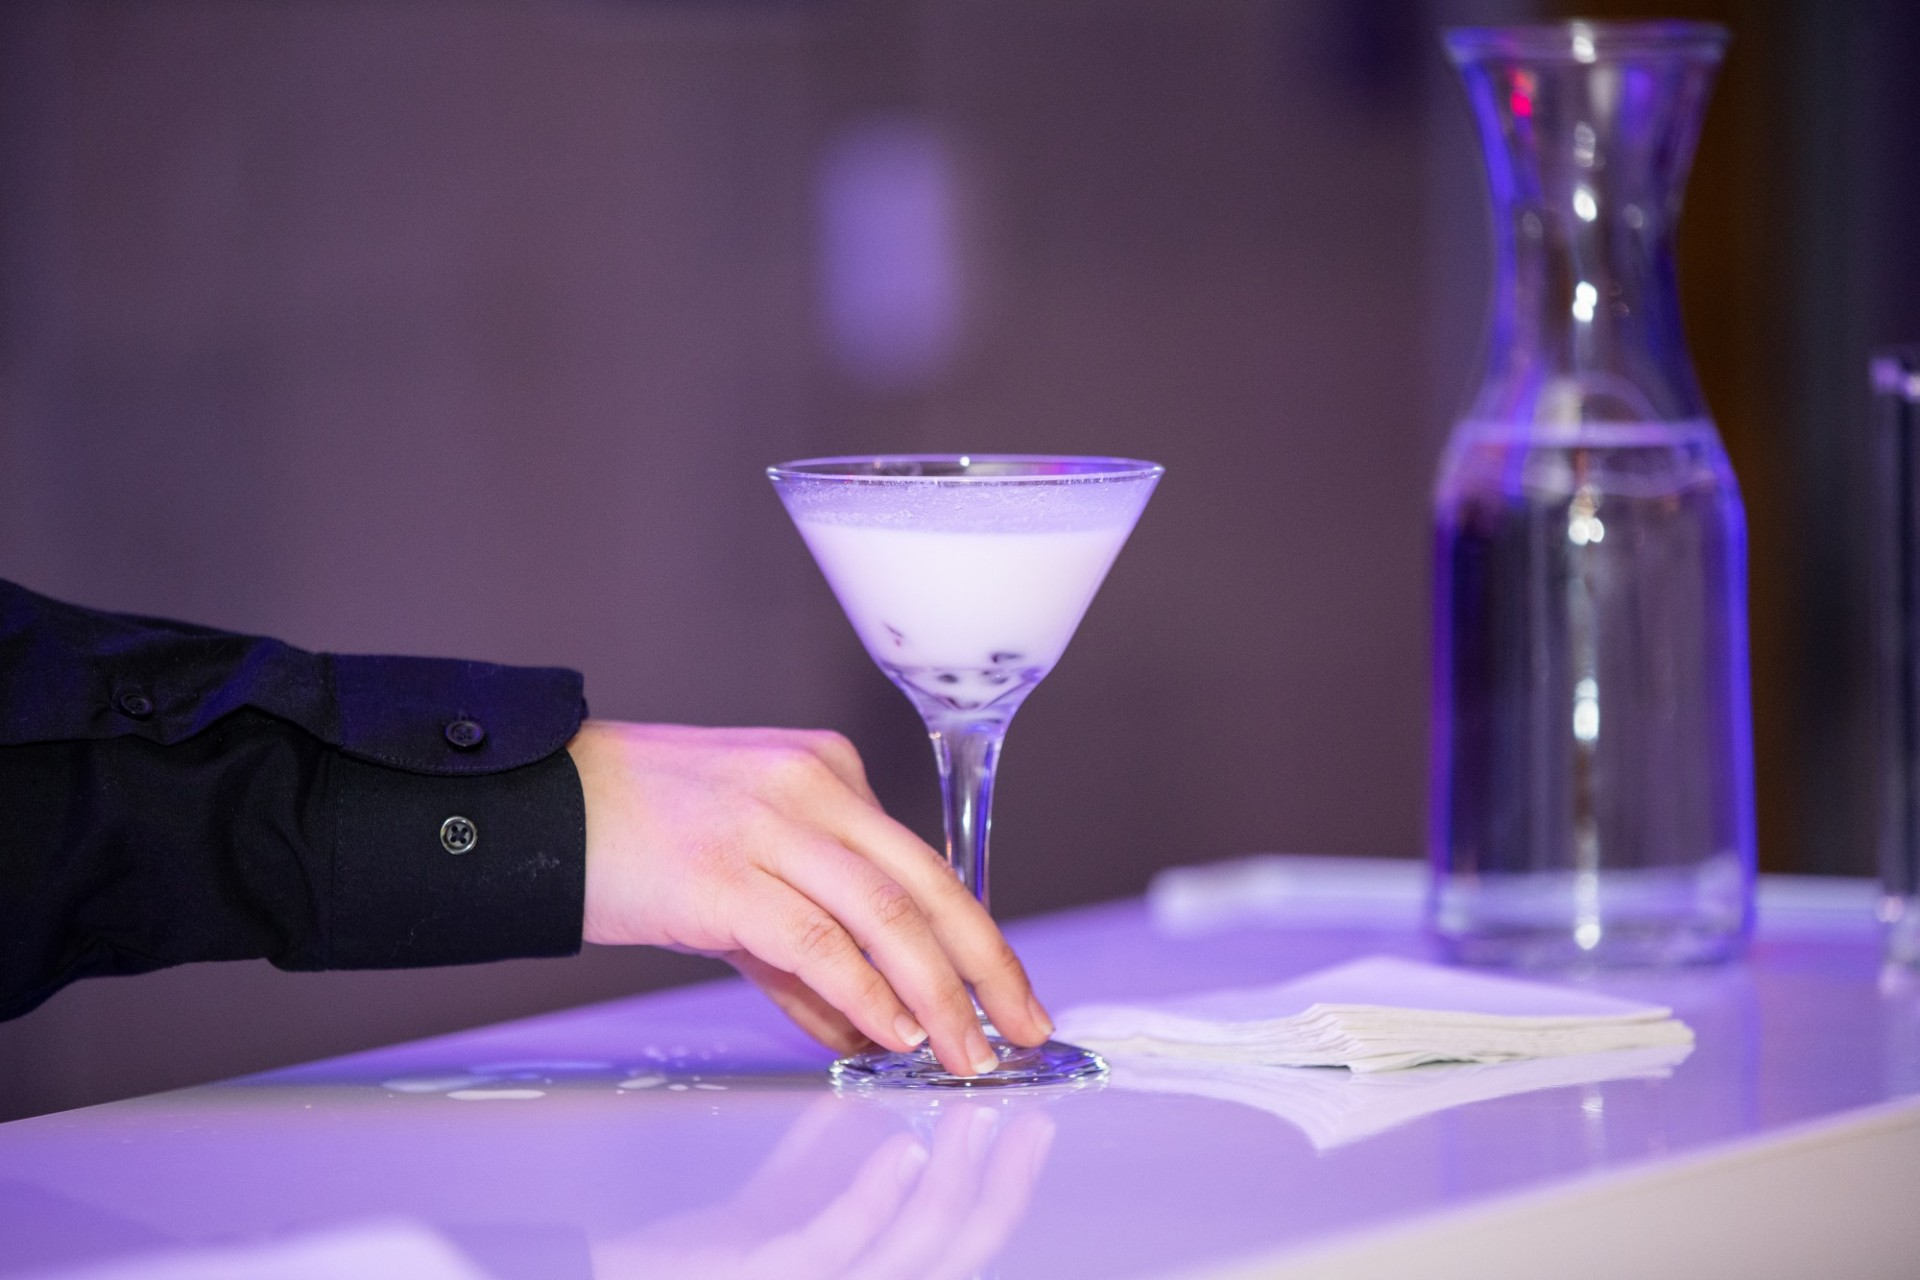 A person serves a cocktail